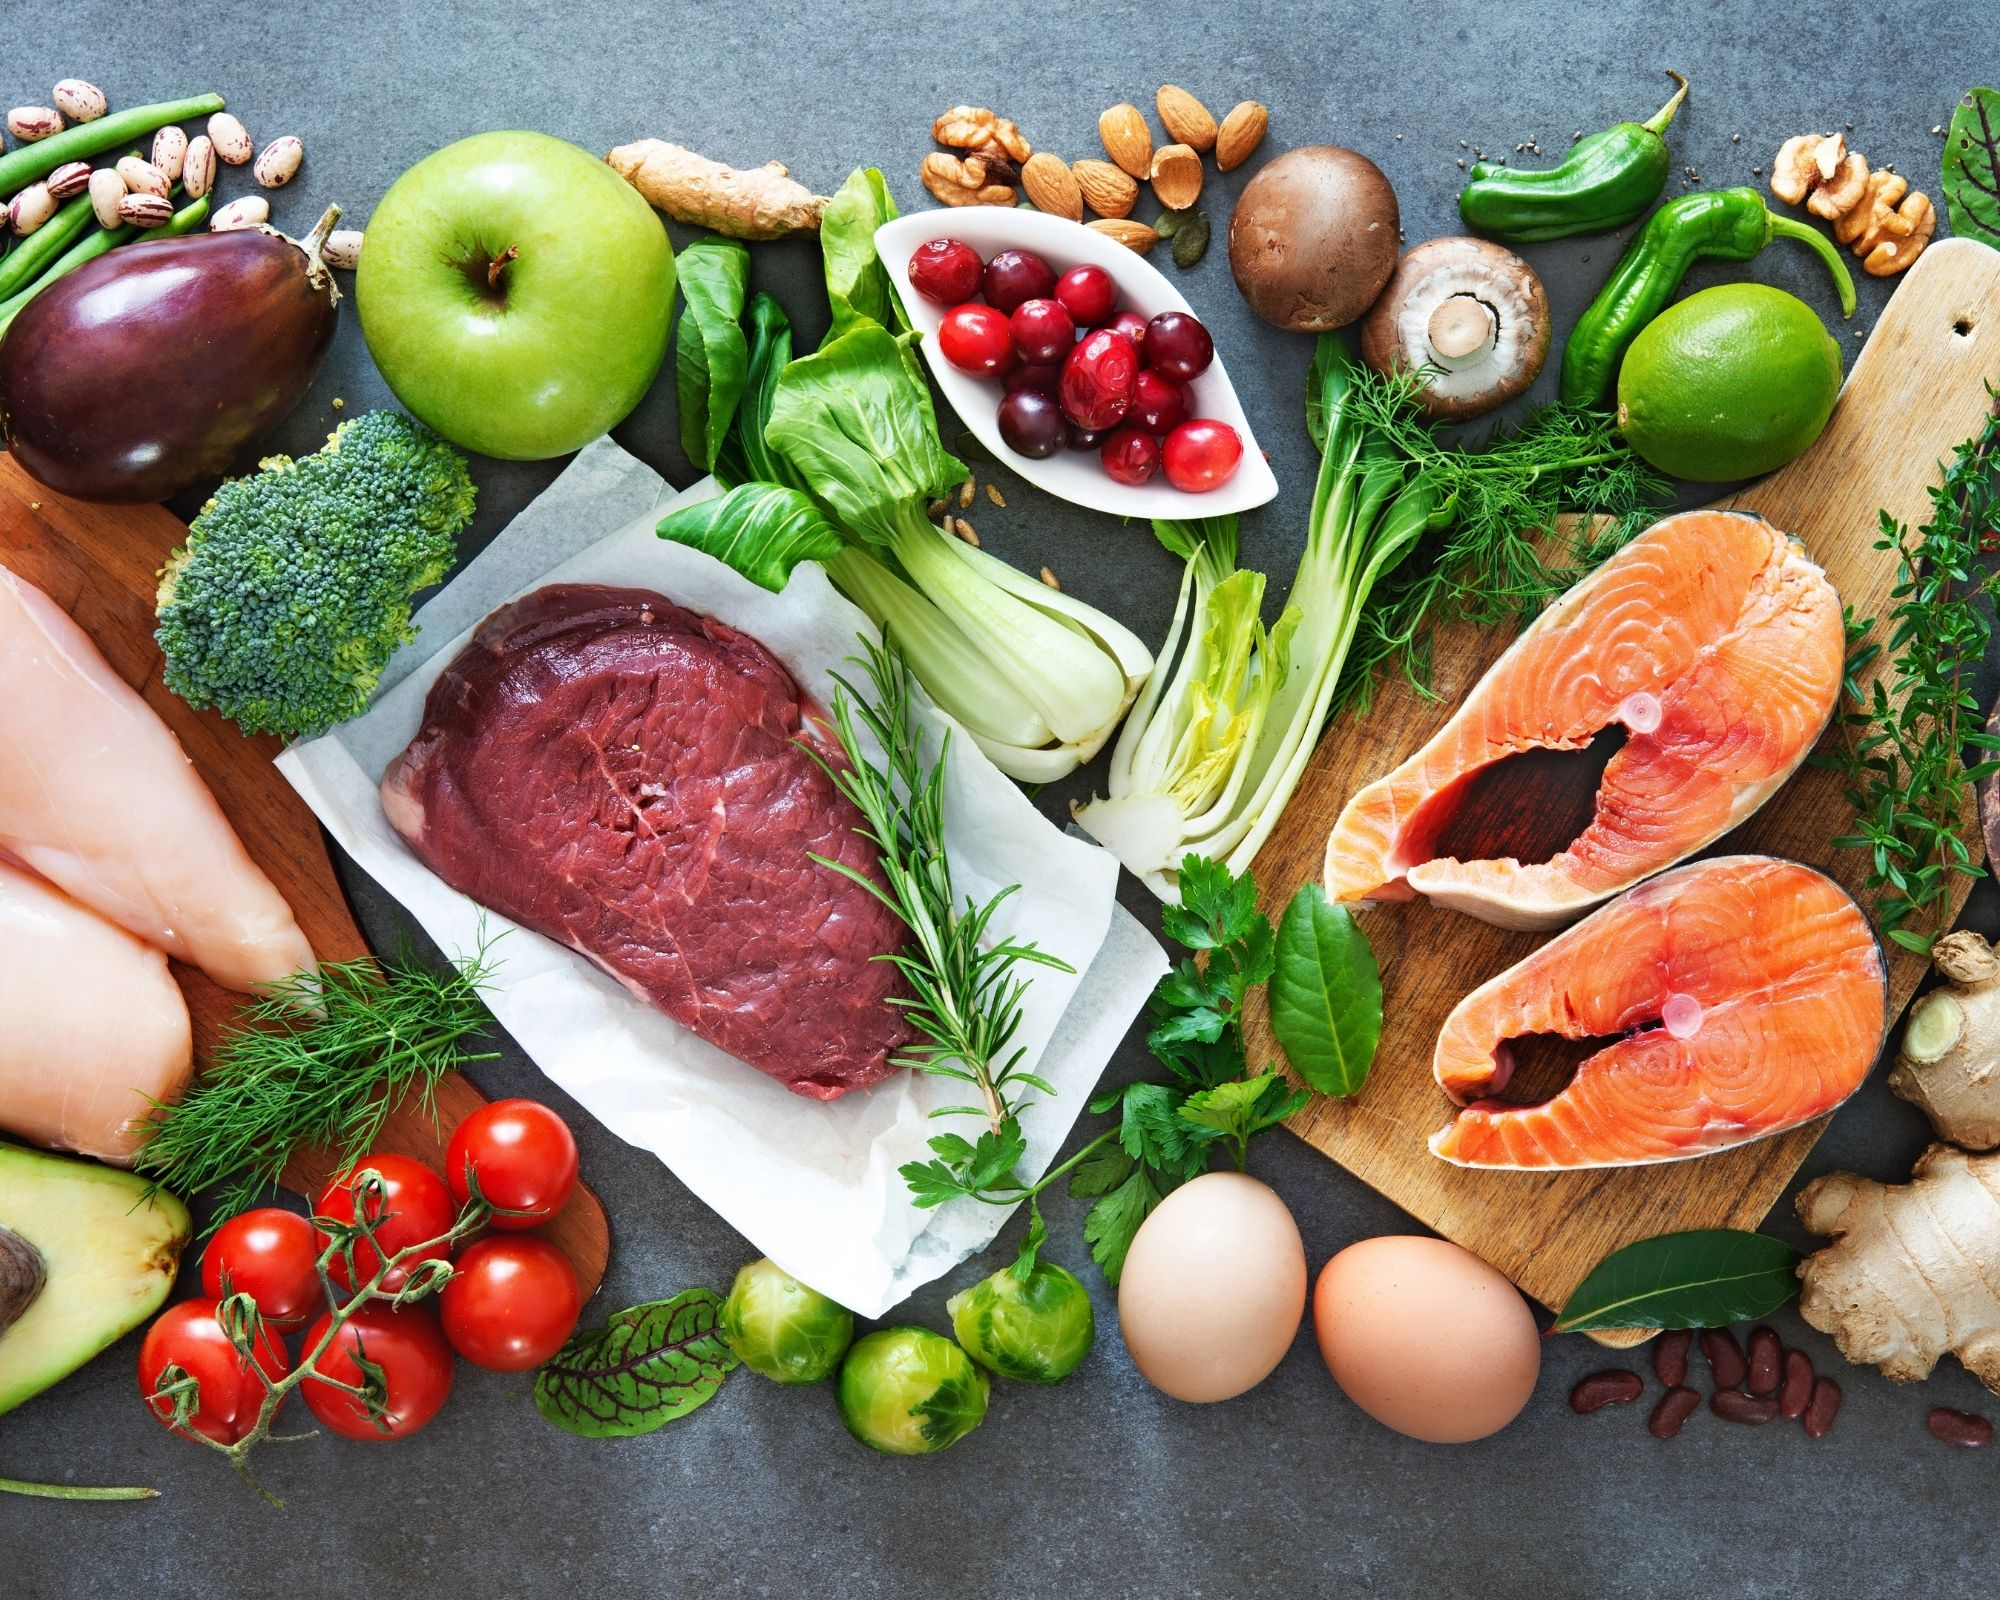 Healthy Food Relates to Weight